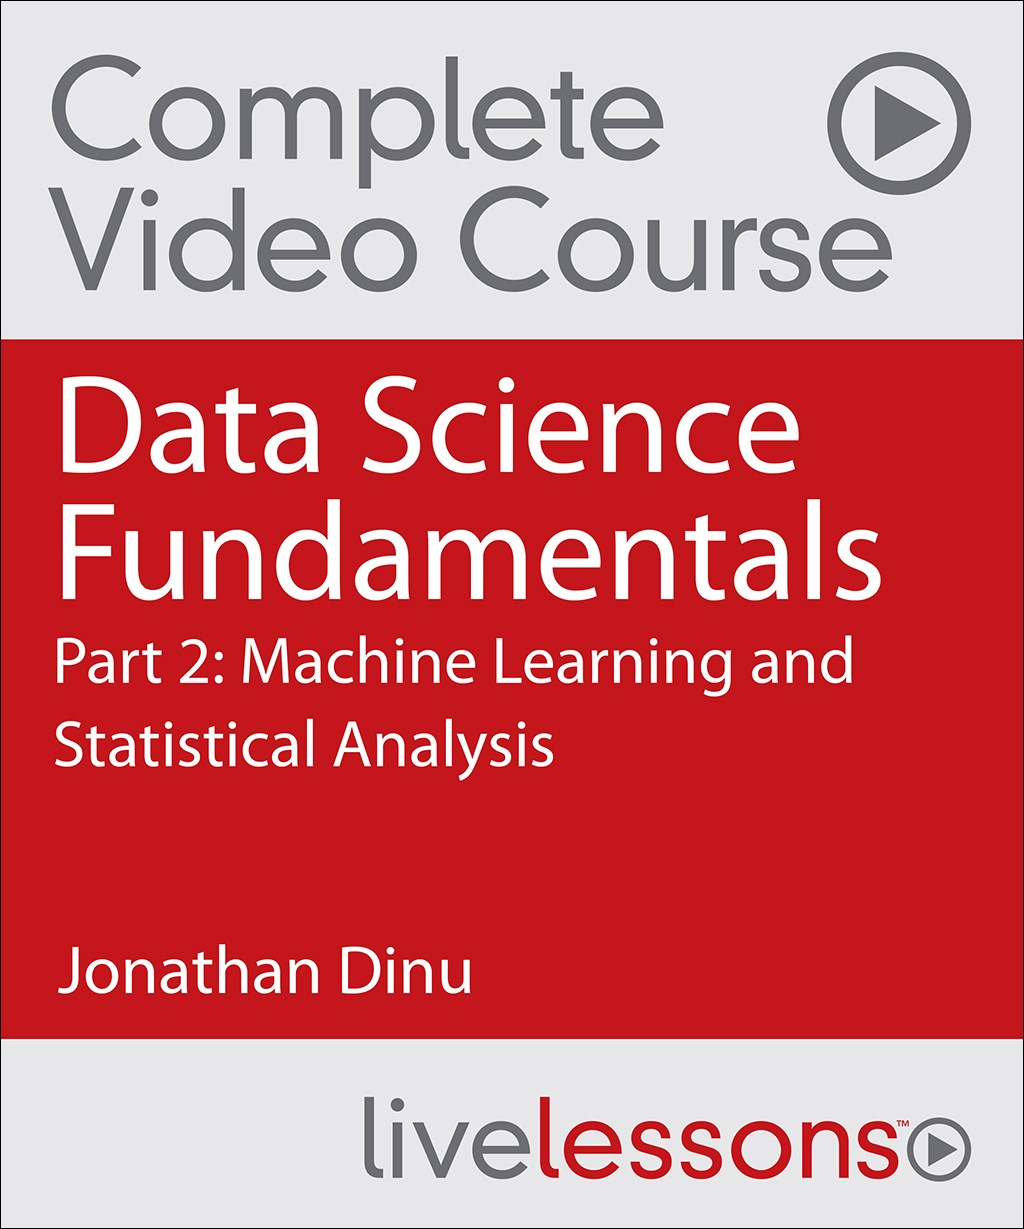 Data Science Fundamentals Part 2, Complete Video Course: Machine Learning and Statistical Analysis